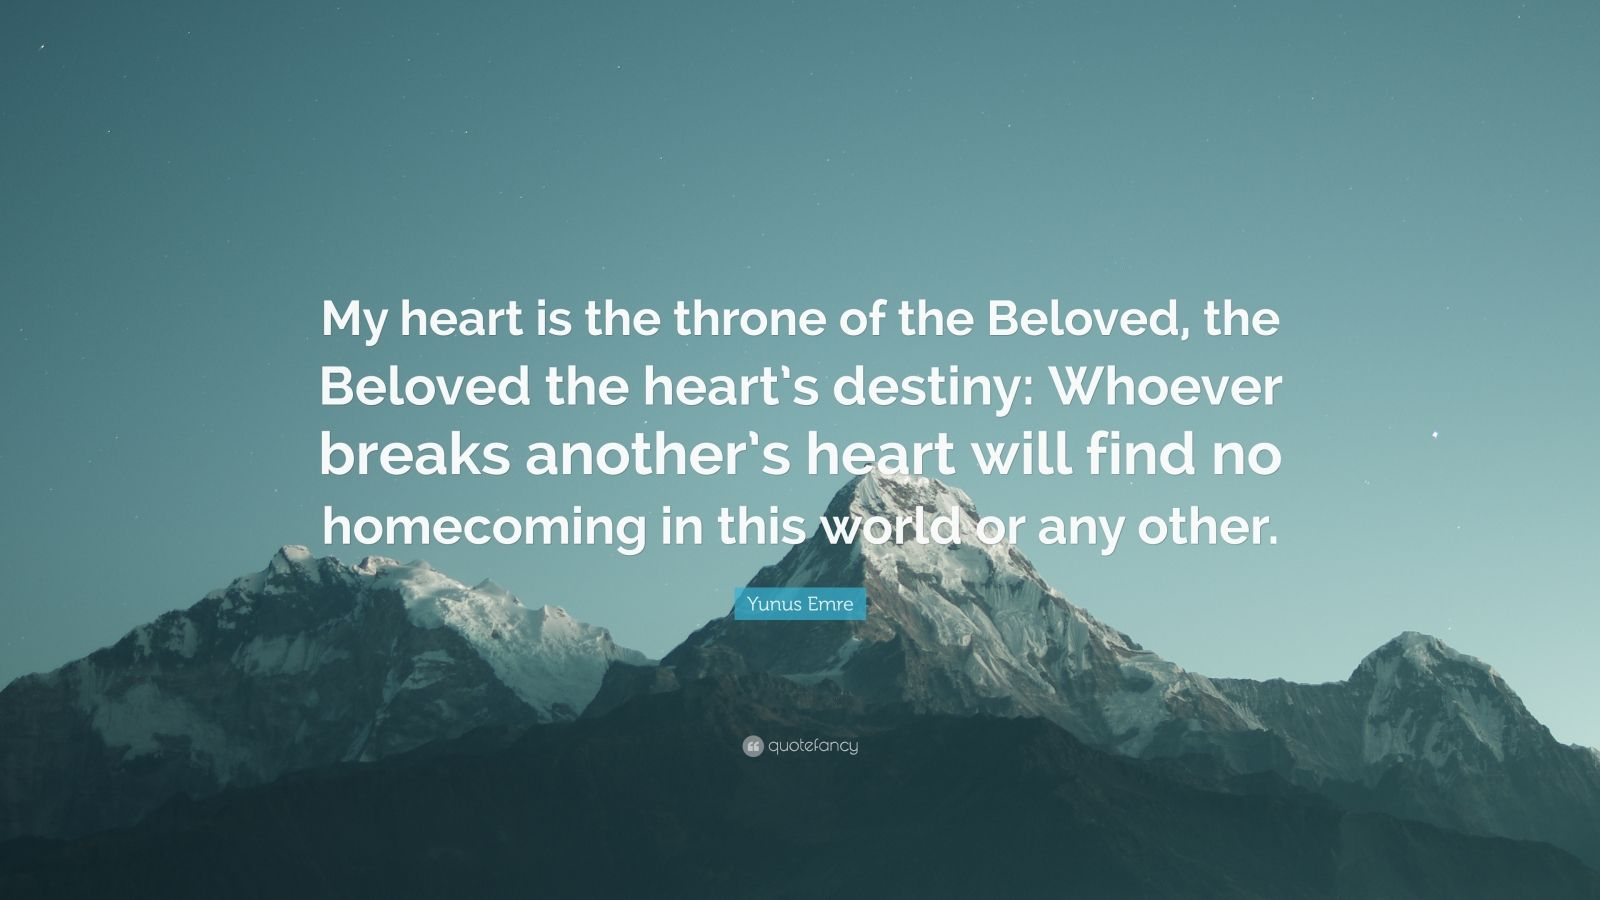 """Yunus Emre Quote: """"My heart is the throne of the Beloved, the Beloved the heart's destiny: Whoever breaks another's heart will find no homecoming in this world or any other."""""""